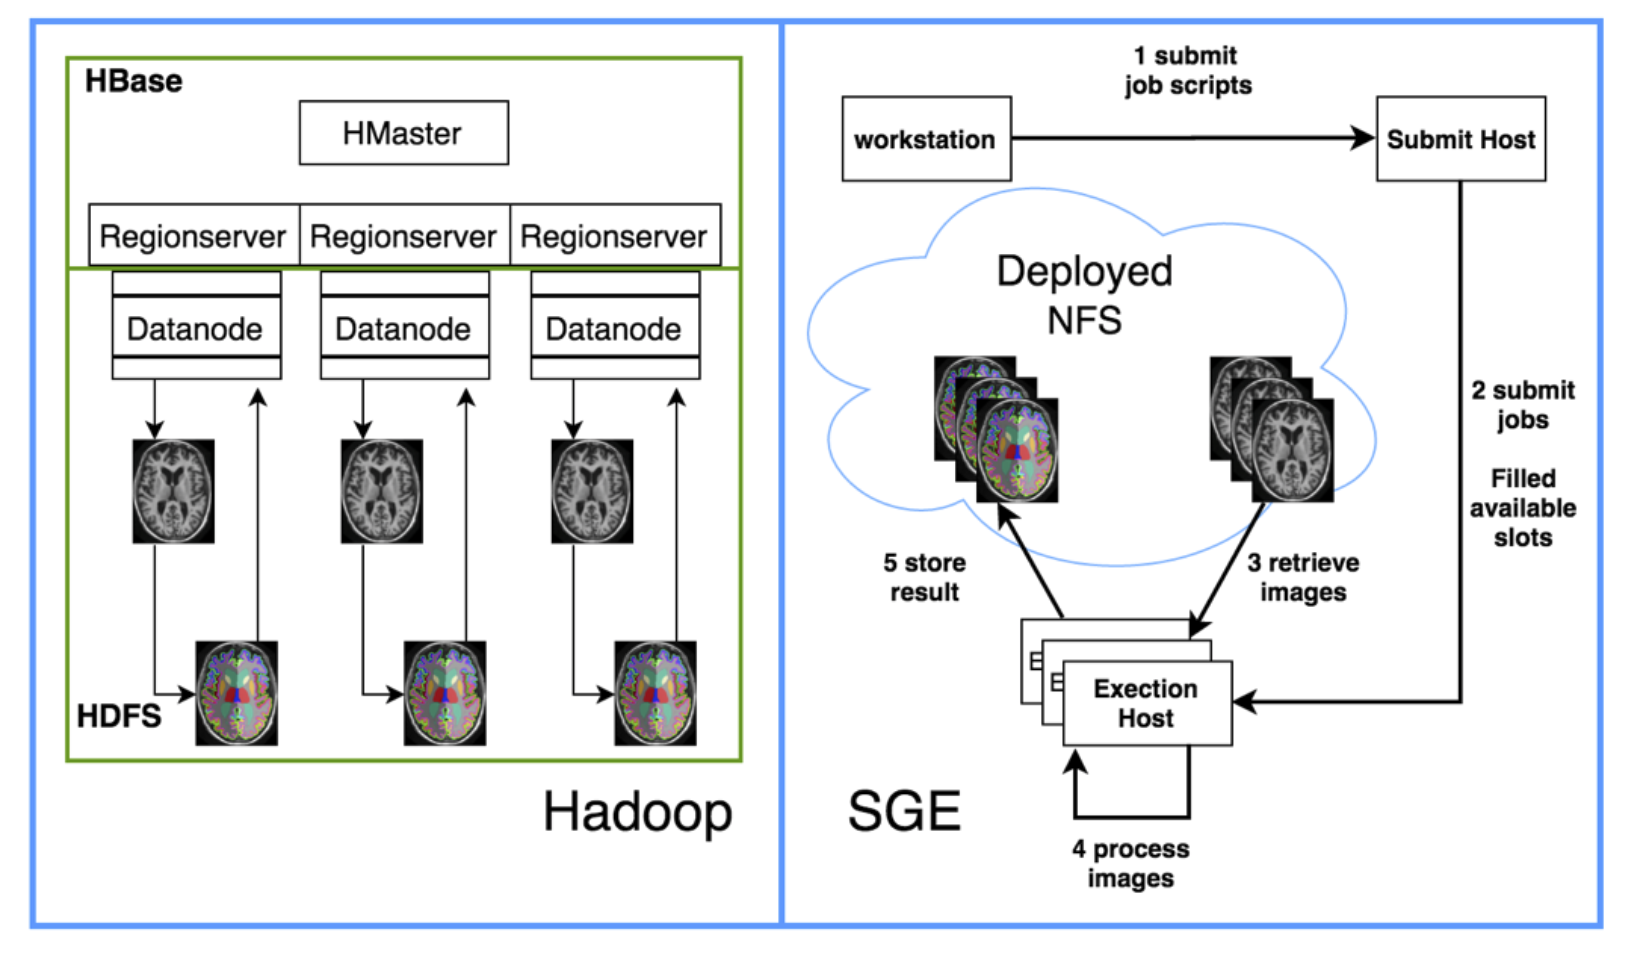 Hadoop and SGE data retrieval, processing and storage working flow basing on Multi-atlas CRUISE (MaCRUISE) segmentation [14, 15]. The data in an HBase table is approximately balanced to each Regionserver. The Regionserver collocates with a Hadoop Datanode to fully utilize the data collocation and locality[7]. We design our proposed computation models using only the map phase of Hadoop's MapReduce [13]. In this phase, the data is retrieved locally; if the result were moved to reduce phase, more data movement would occur, because the reduce phase does not ensure process local data. Within the map phase, all necessary data is retrieved and saved on a local directory and gets furtherly processed by locally installed binary executables command-line program. After that, the results of processing are uploaded back to HBase. For SGE, the user submits a batch of jobs to a submit host, and this host dispatches the job to execution hosts. Each execution host retrieves the data within a shared NFS and stores the result back to the NFS.